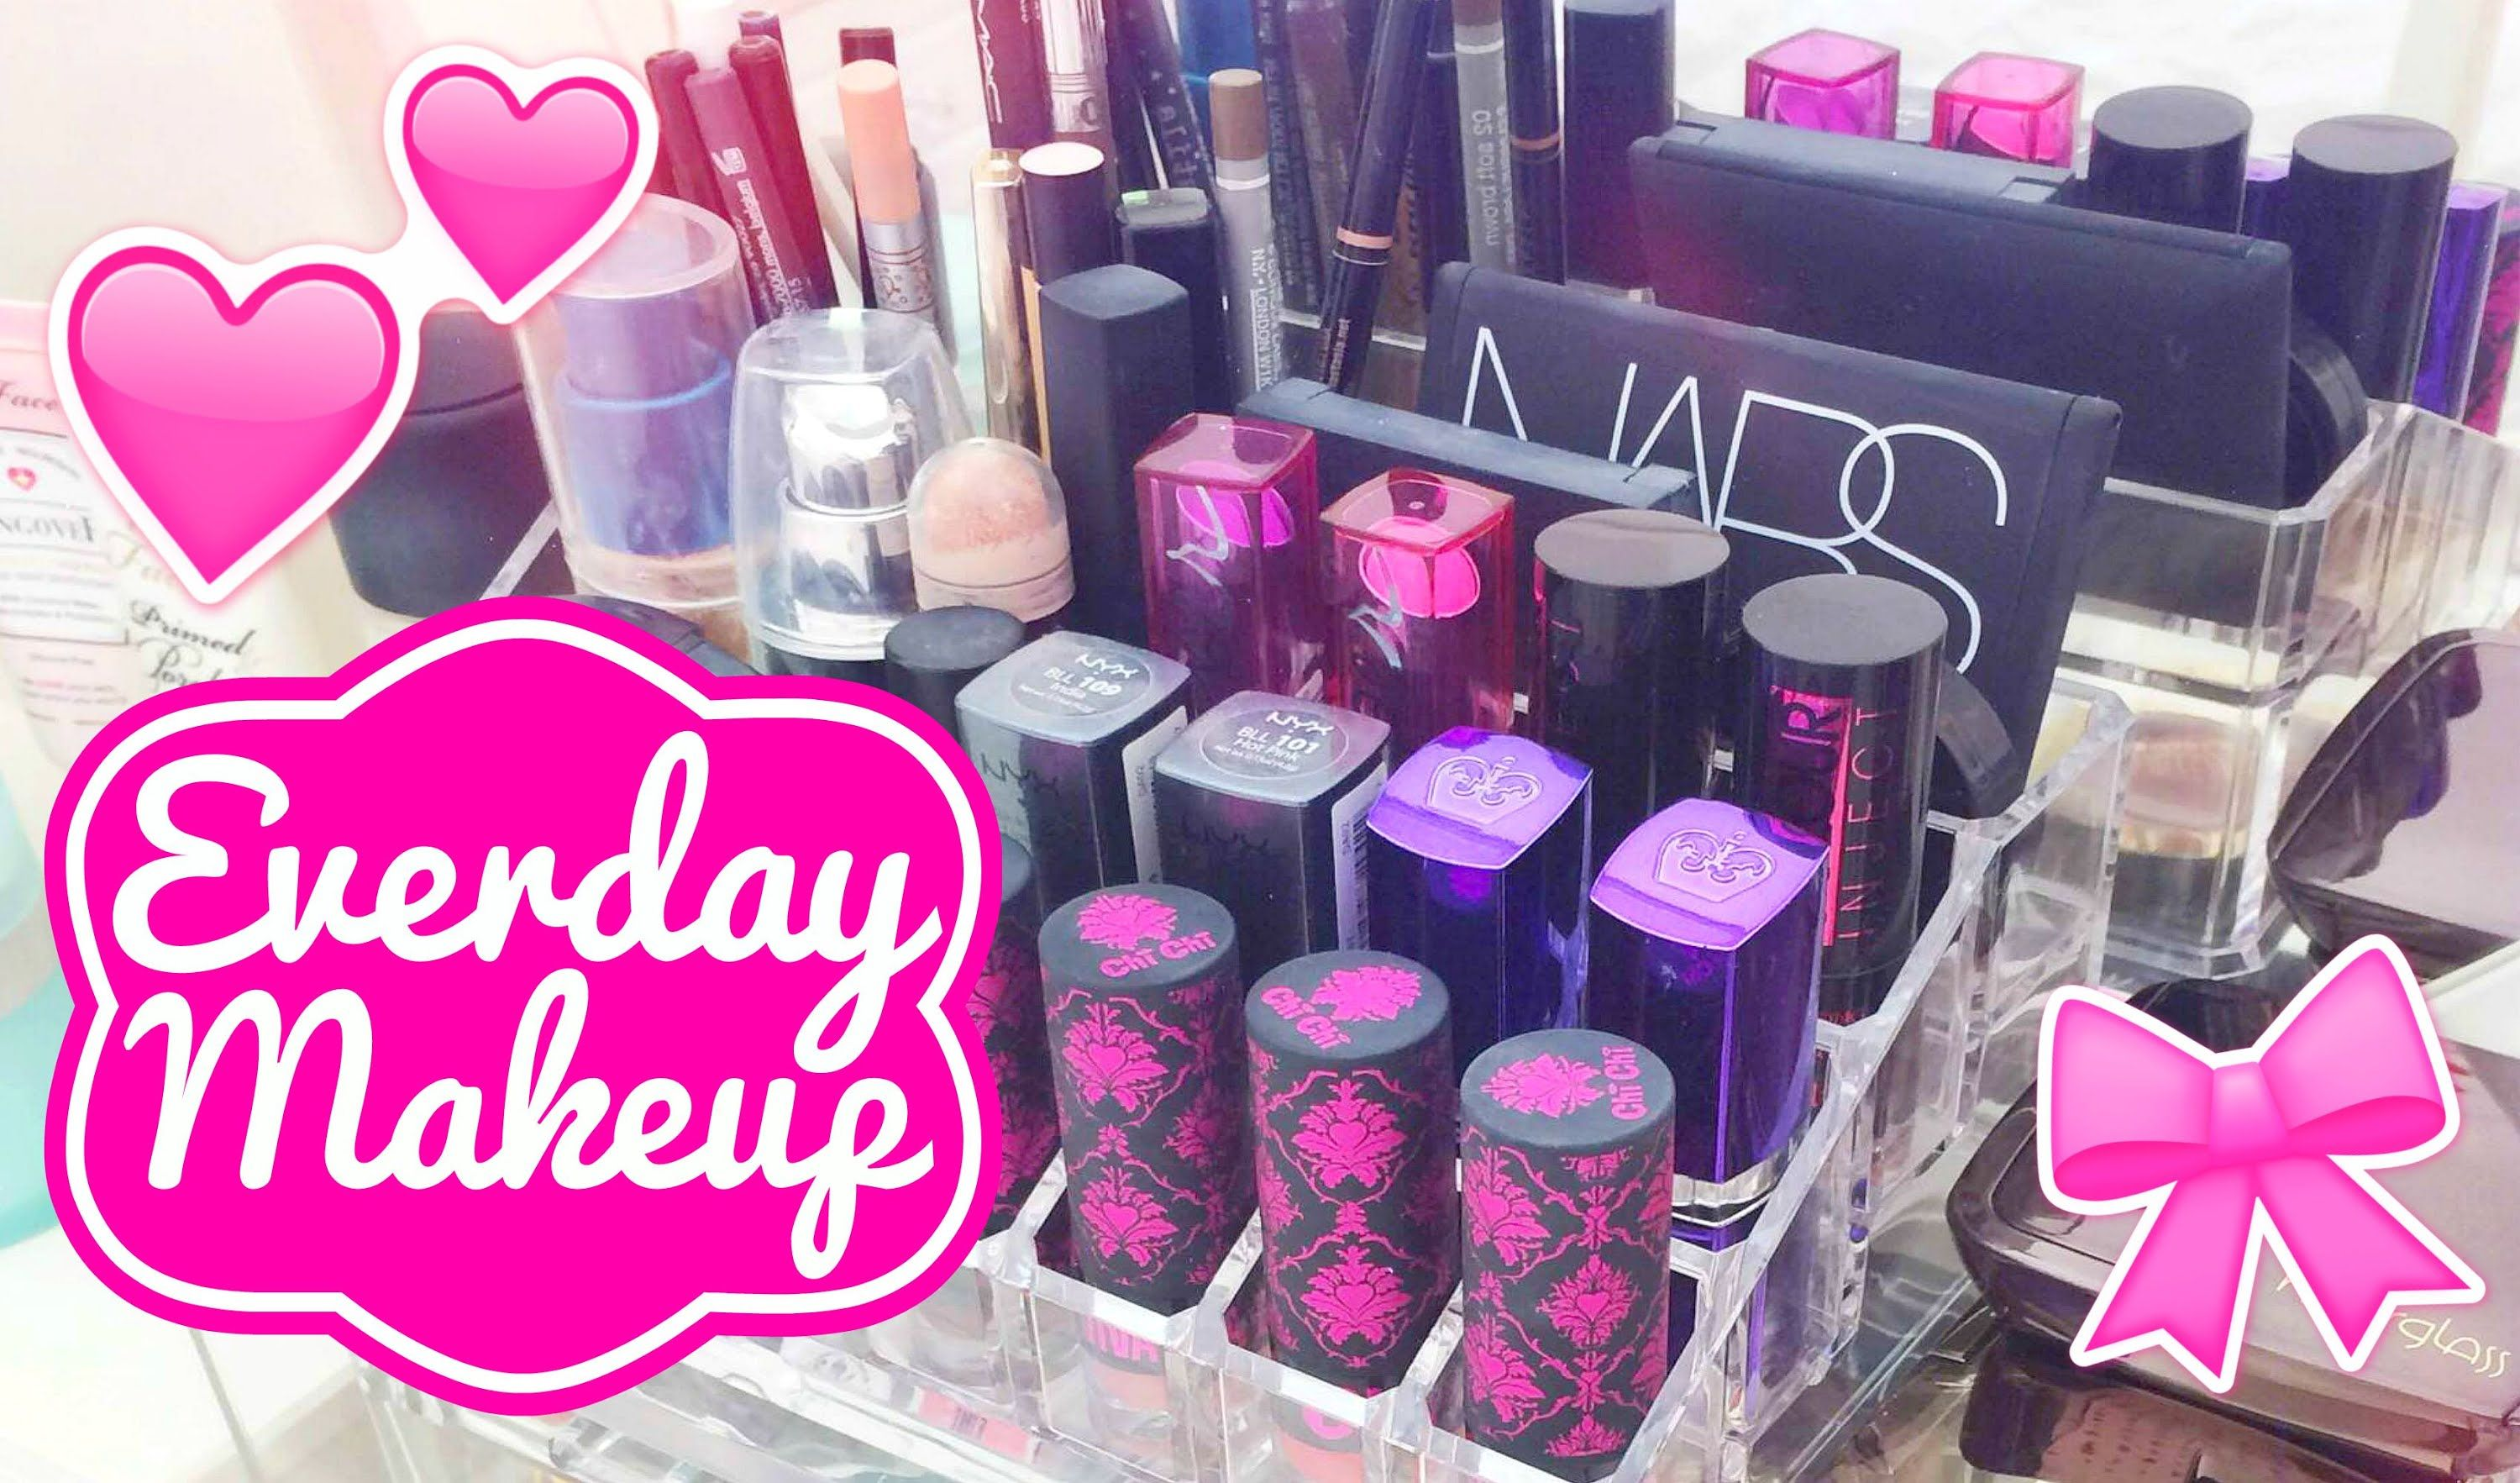 My everyday makeup routine chit chat gillian bower loves my everyday makeup routine chit chat gillian bower ccuart Image collections